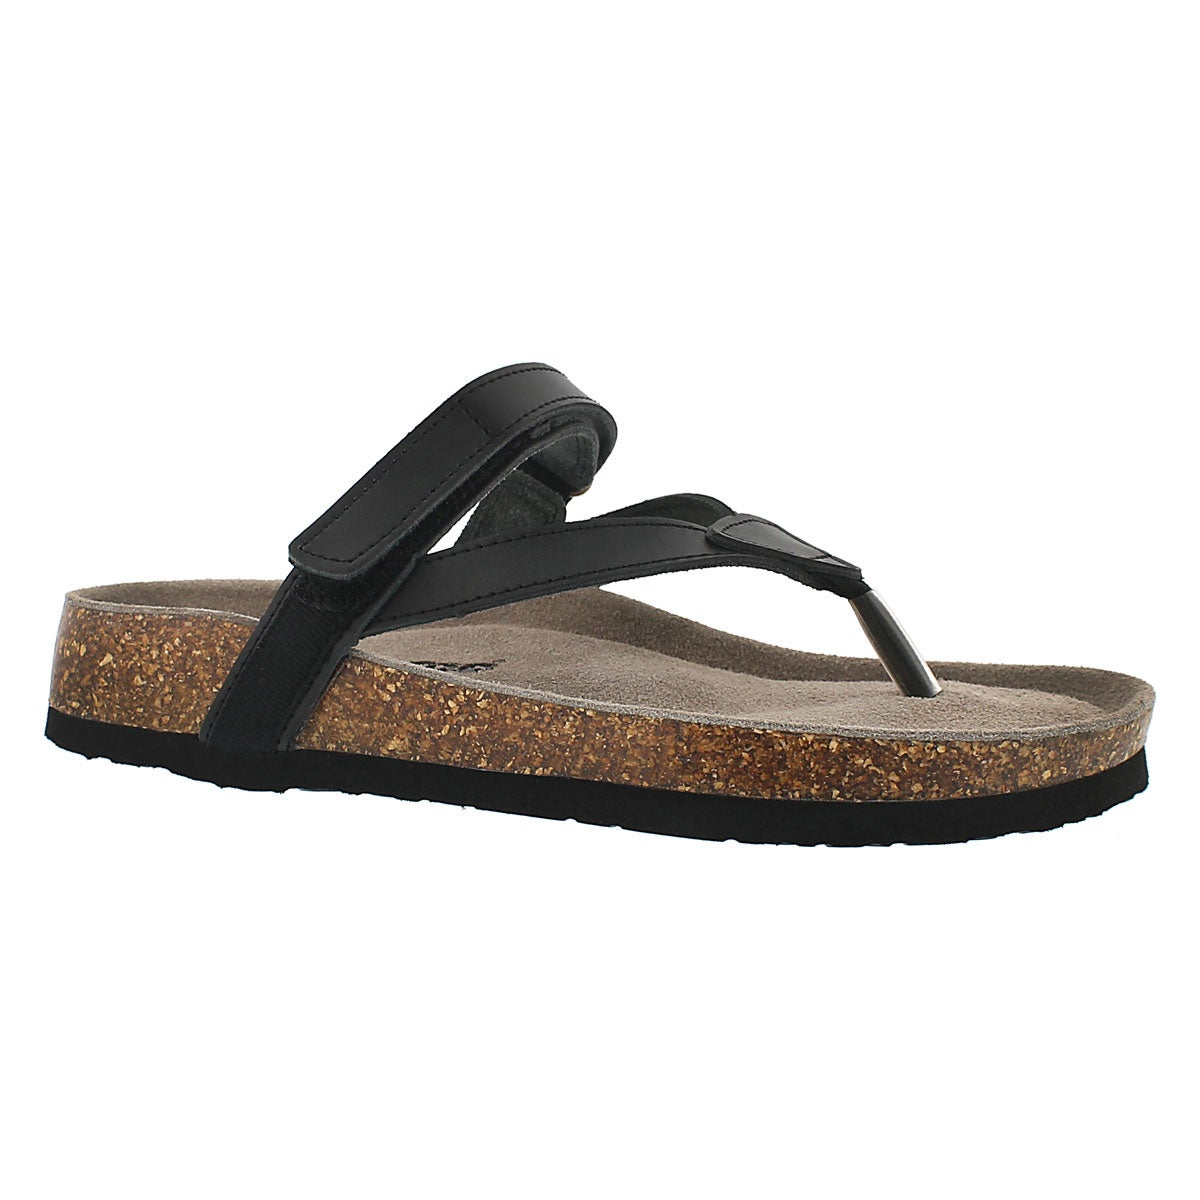 Women's AISHA black memory foam sandals